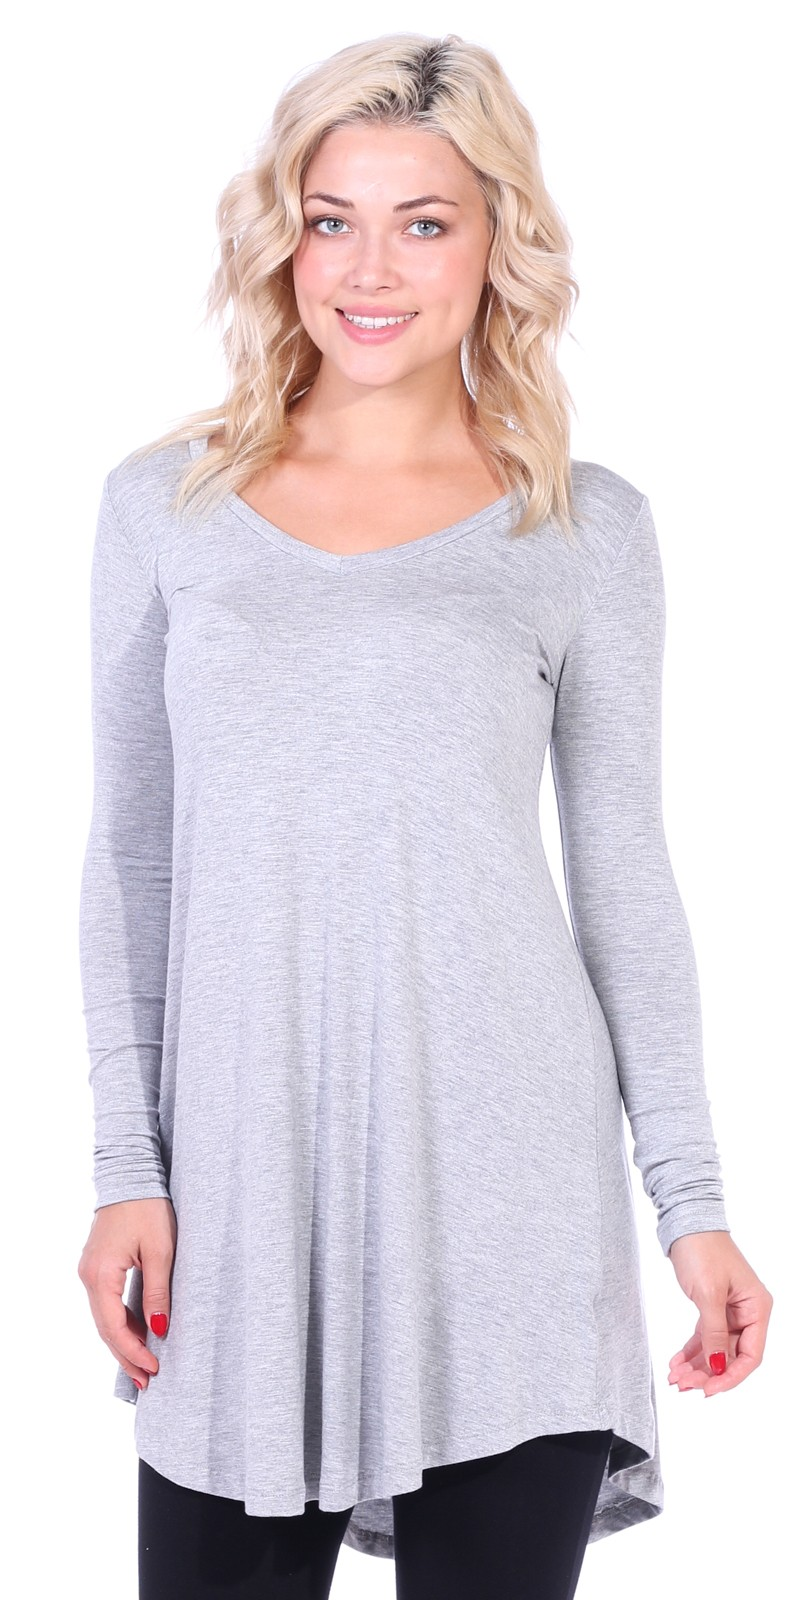 Women's Tunic Tops For Leggings - Long Sleeve Vneck Shirt - Regular and Plus Size - Made in USA - HGray